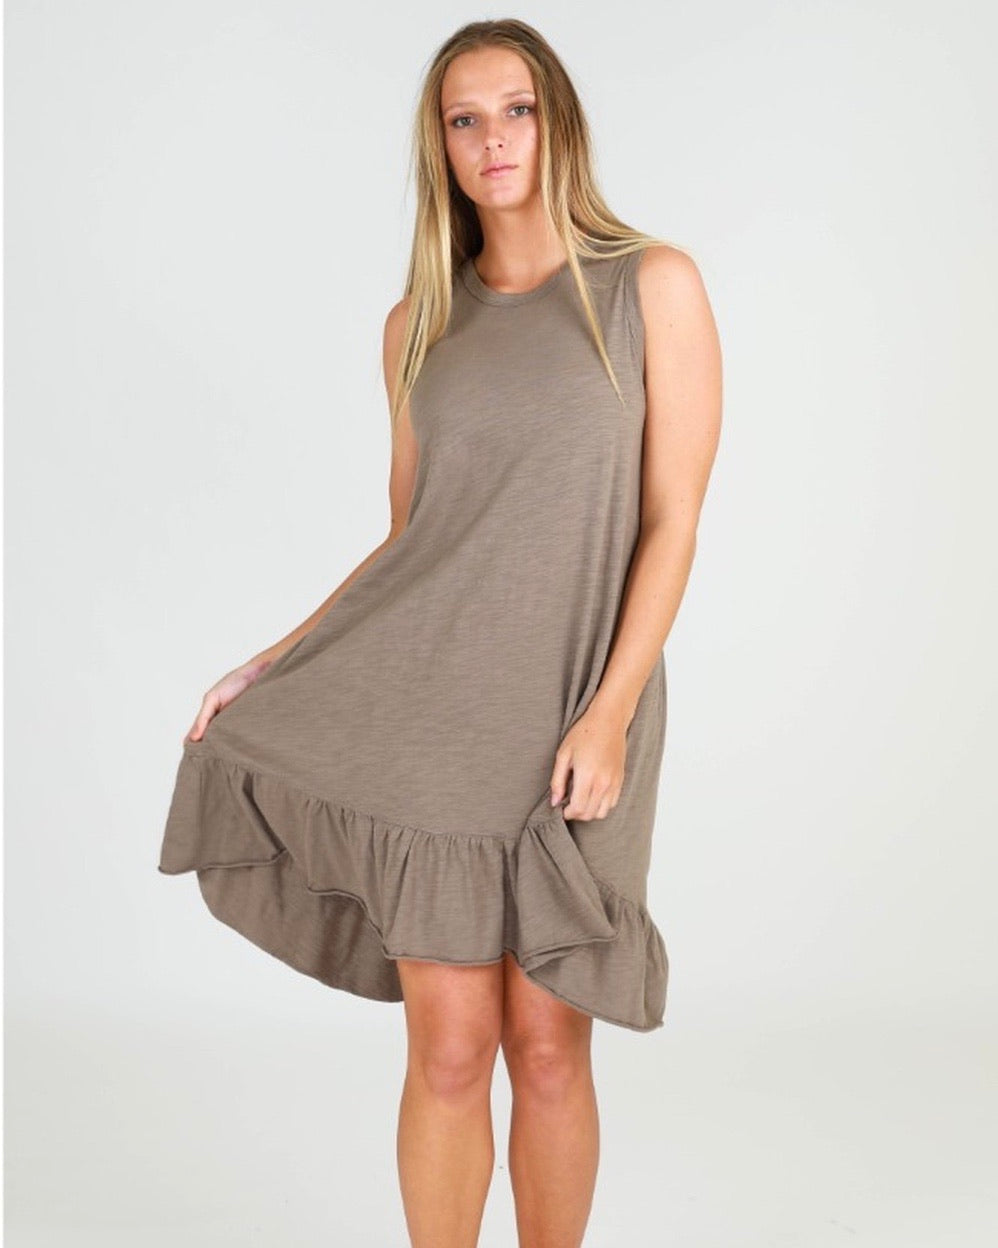 3rd Story Hillary Tunic Dress Olive